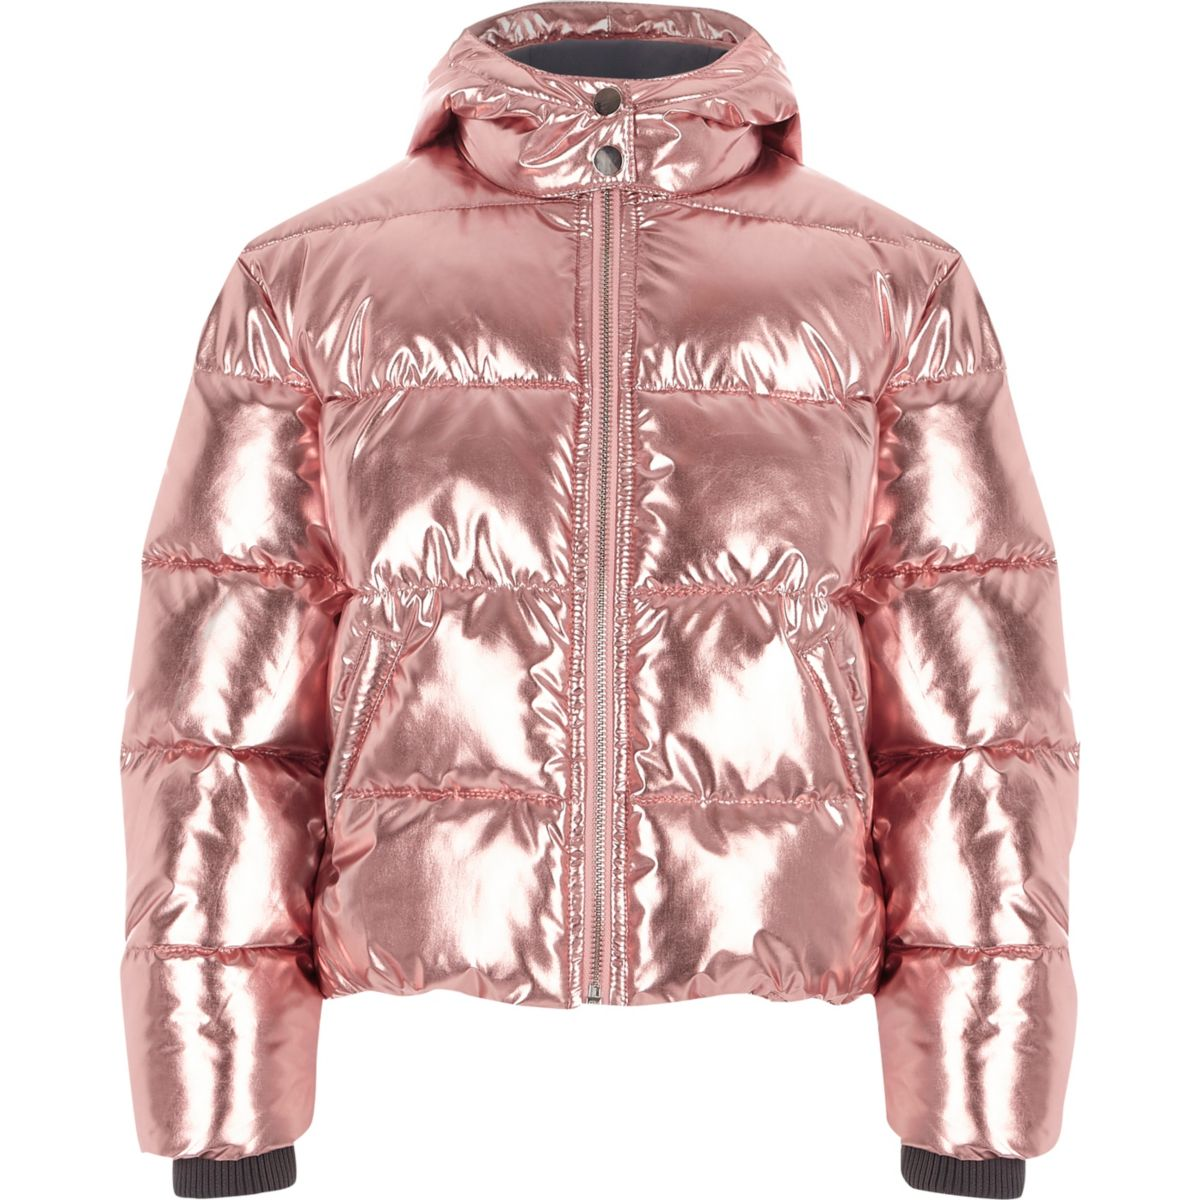 Girls pink metallic hooded puffer jacket - Jackets - Coats ...